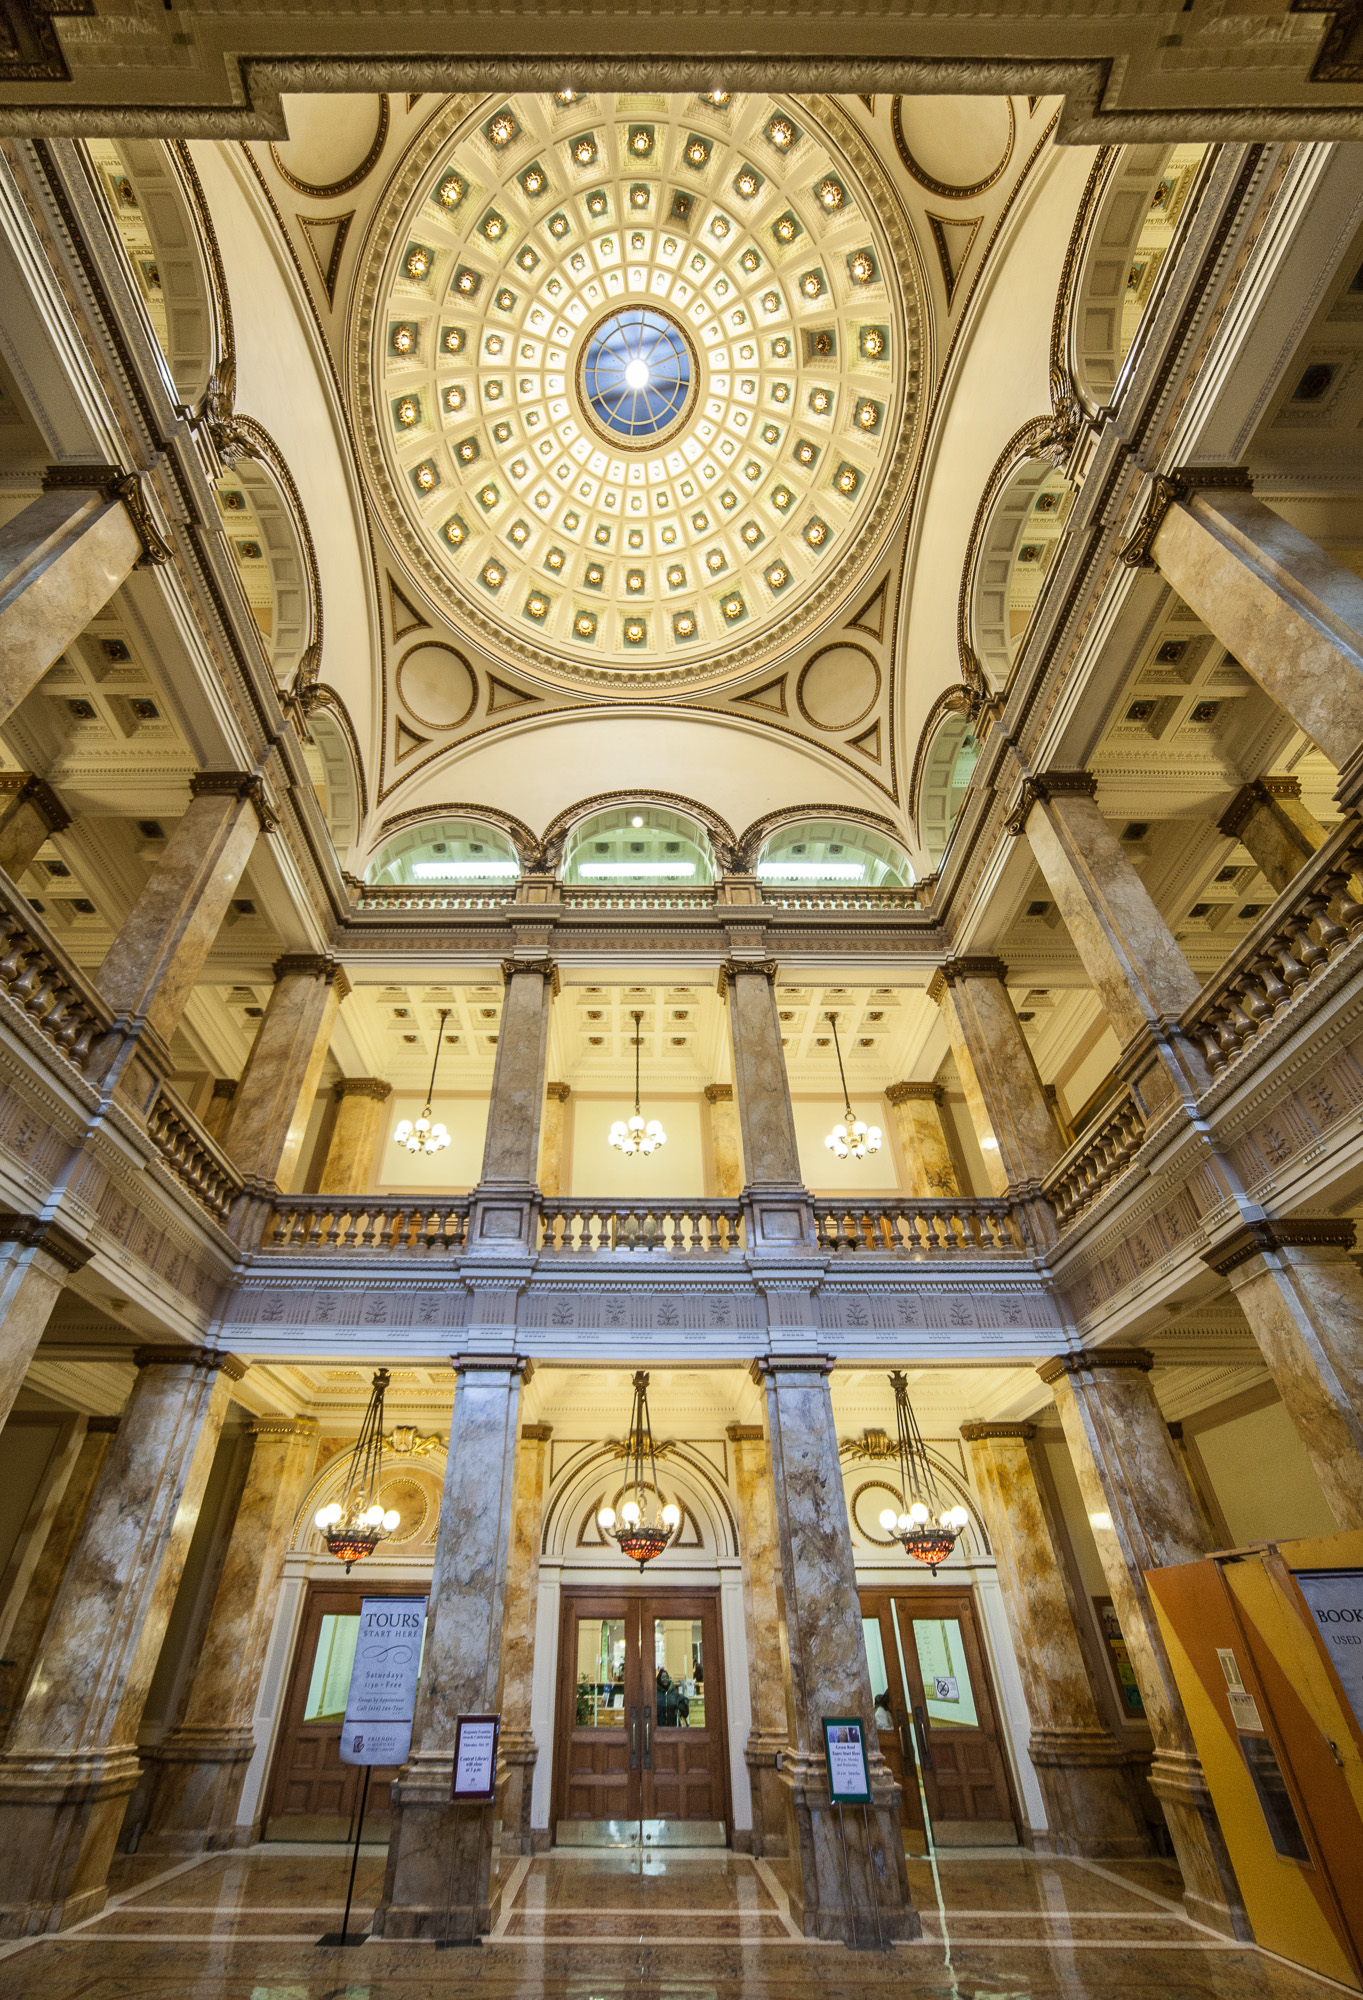 Interior Lobby And Ceiling Obtained From Wikimedia Commons Under The Terms Of GNU Free